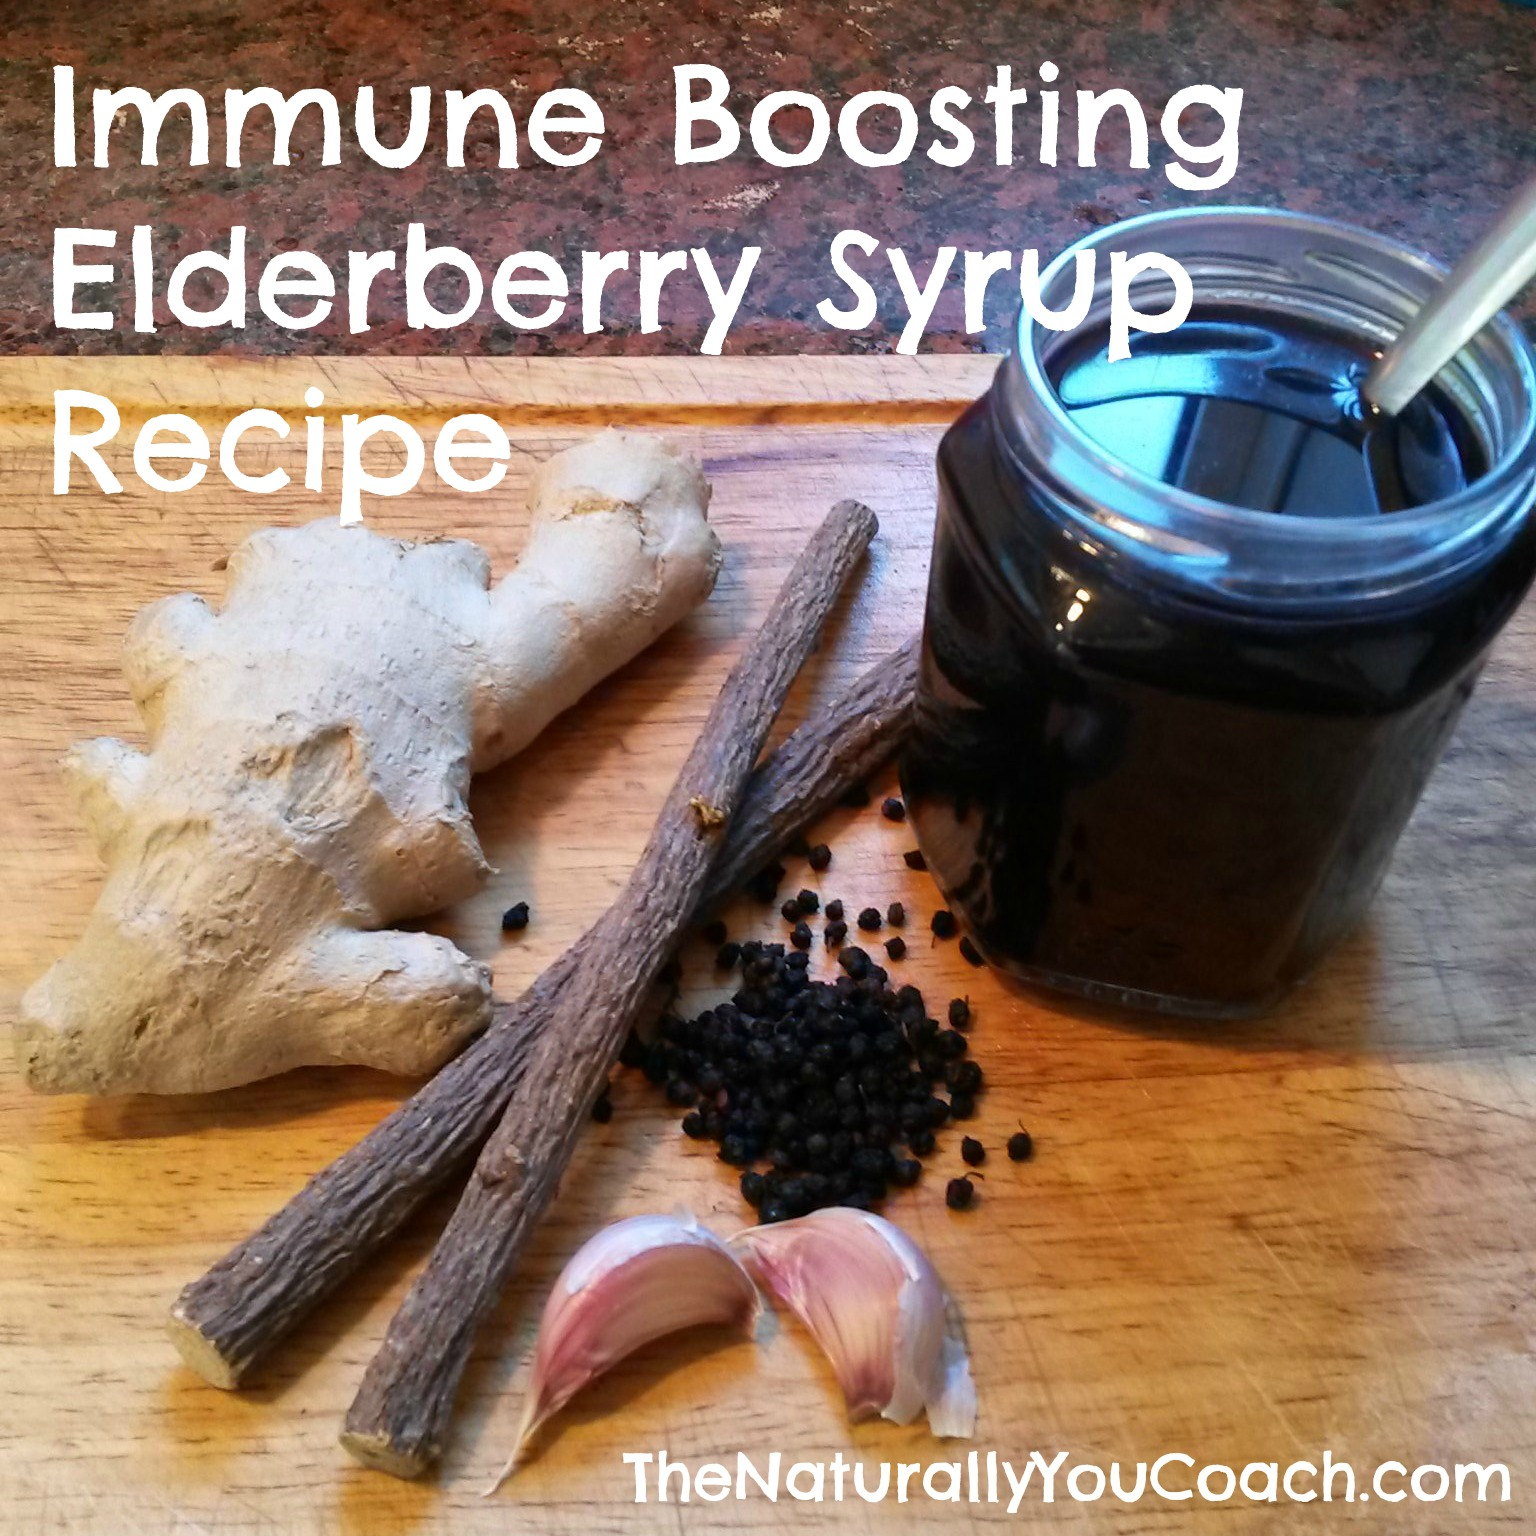 Immune Boosting Elderberry Syrup Recipe